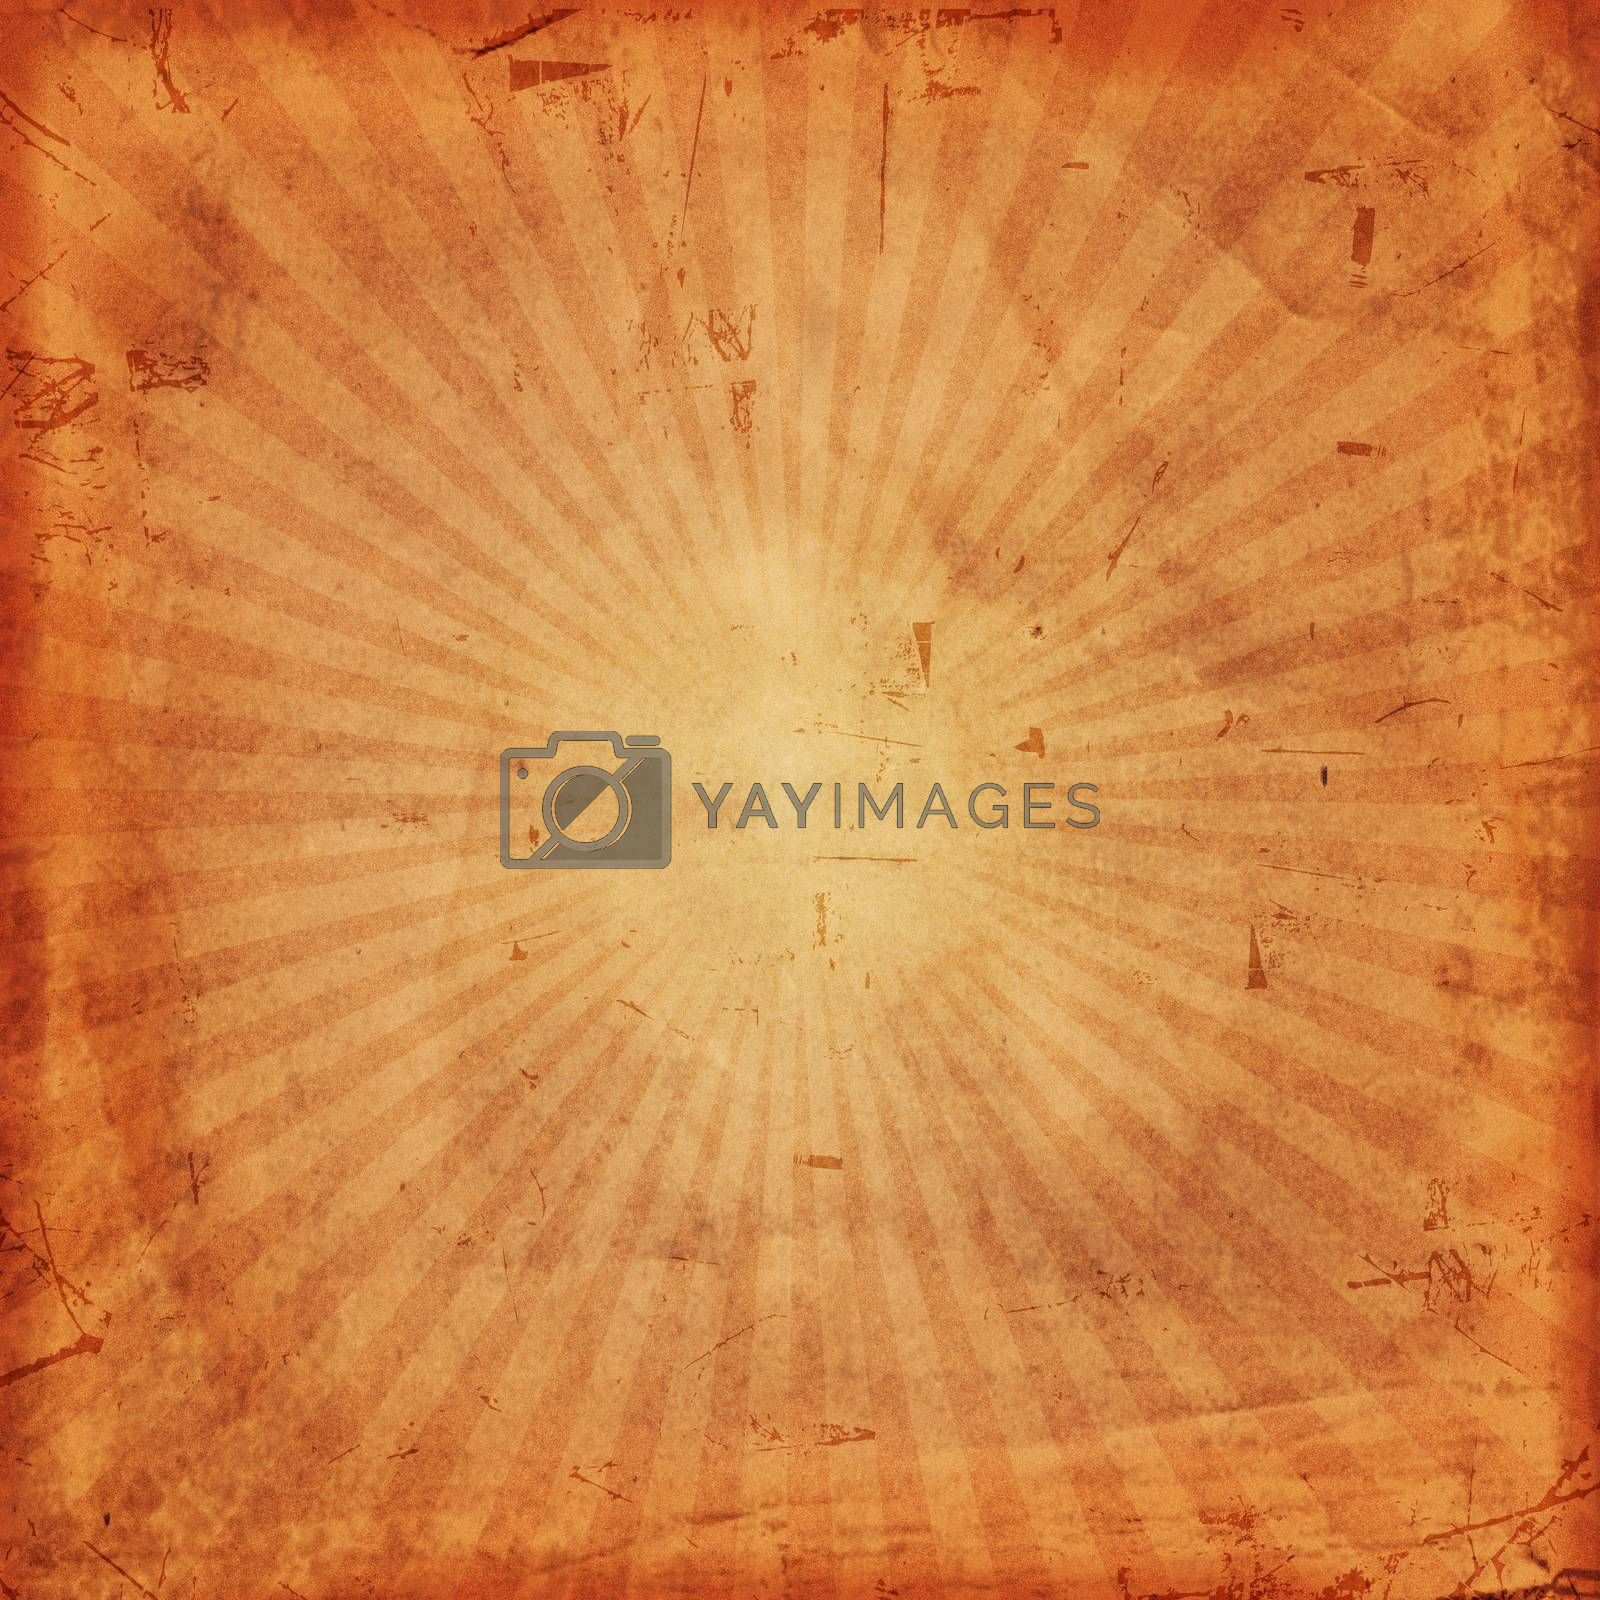 Royalty free image of vintage background with rays by marinini